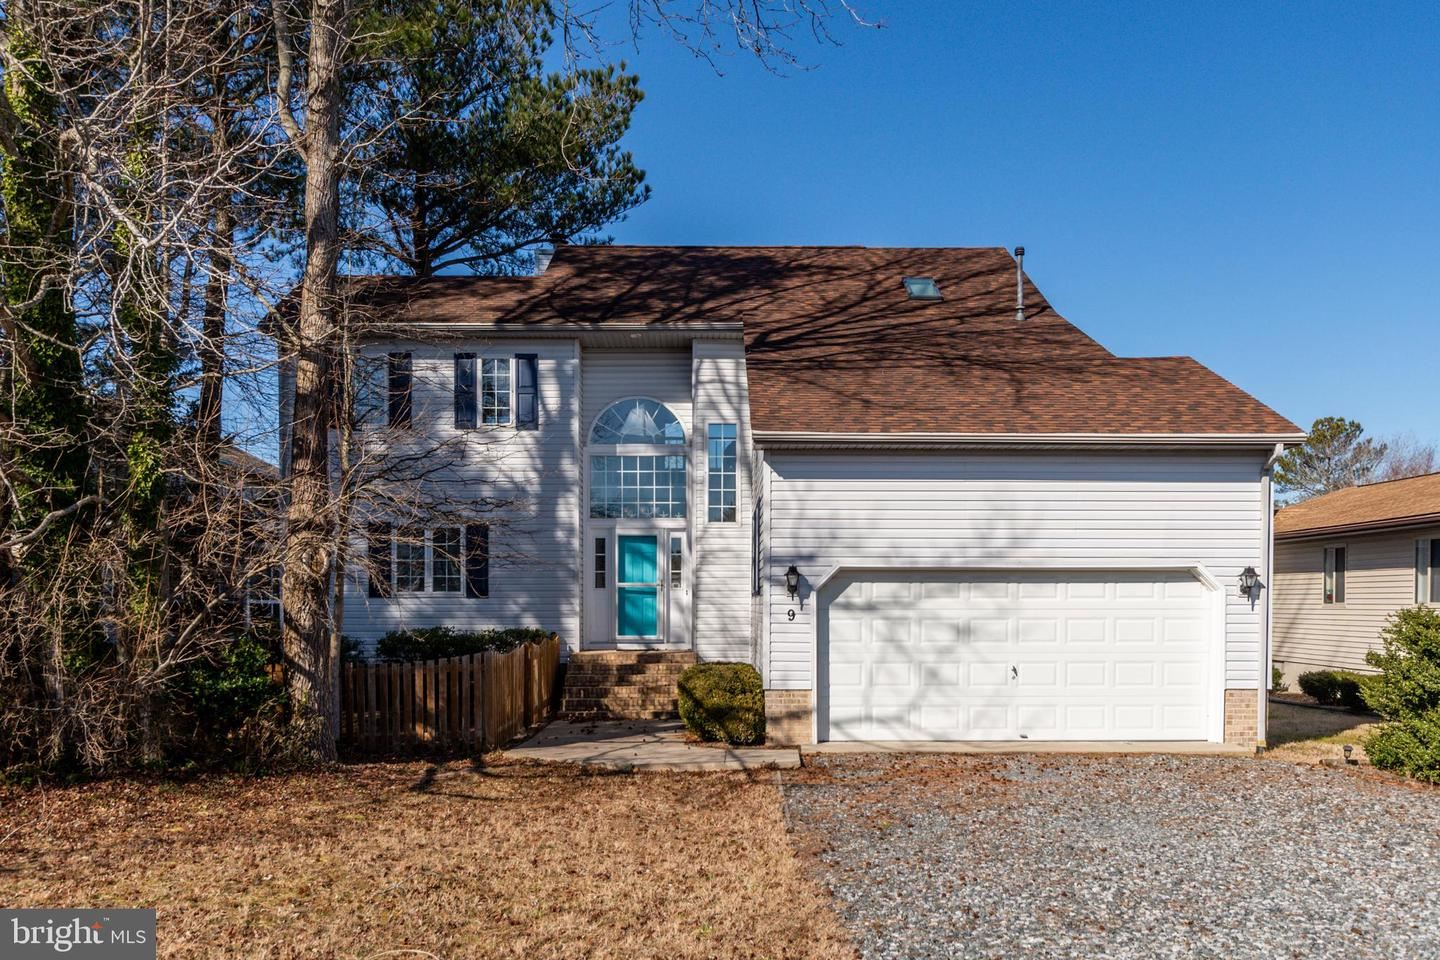 Photo of 9 HARBORVIEW DR, OCEAN PINES, MD 21811 (MLS # MDWO120004)